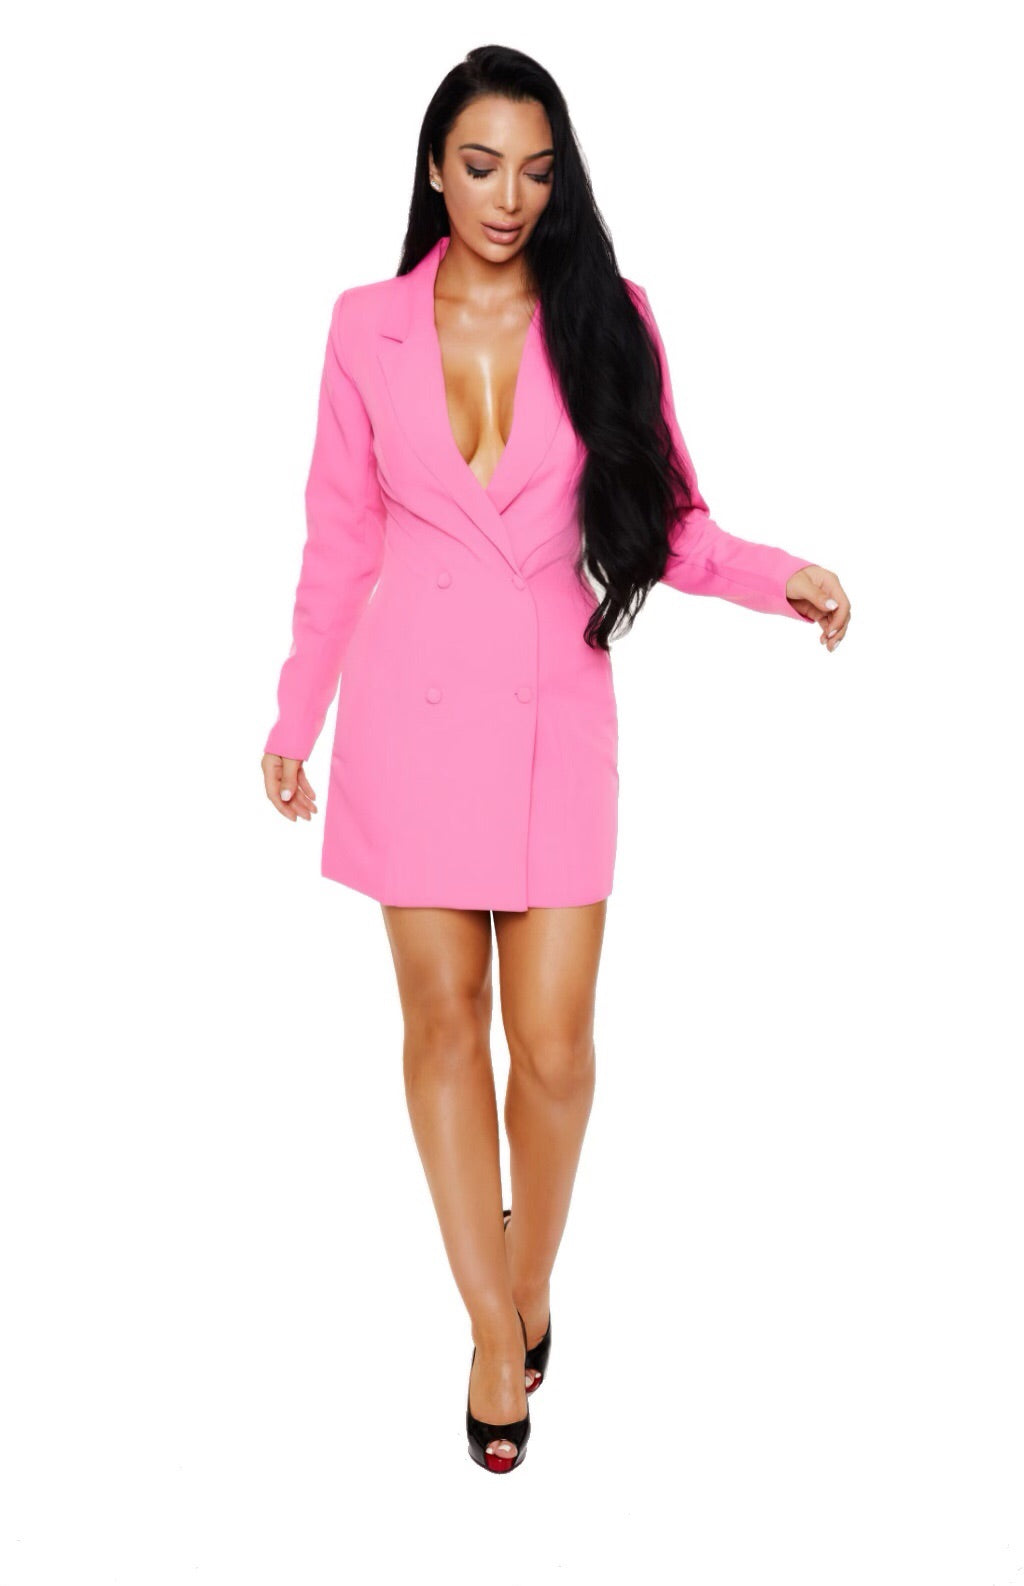 ELLE WOODS BLAZER DRESS - Pink - www.prettyboutique.com